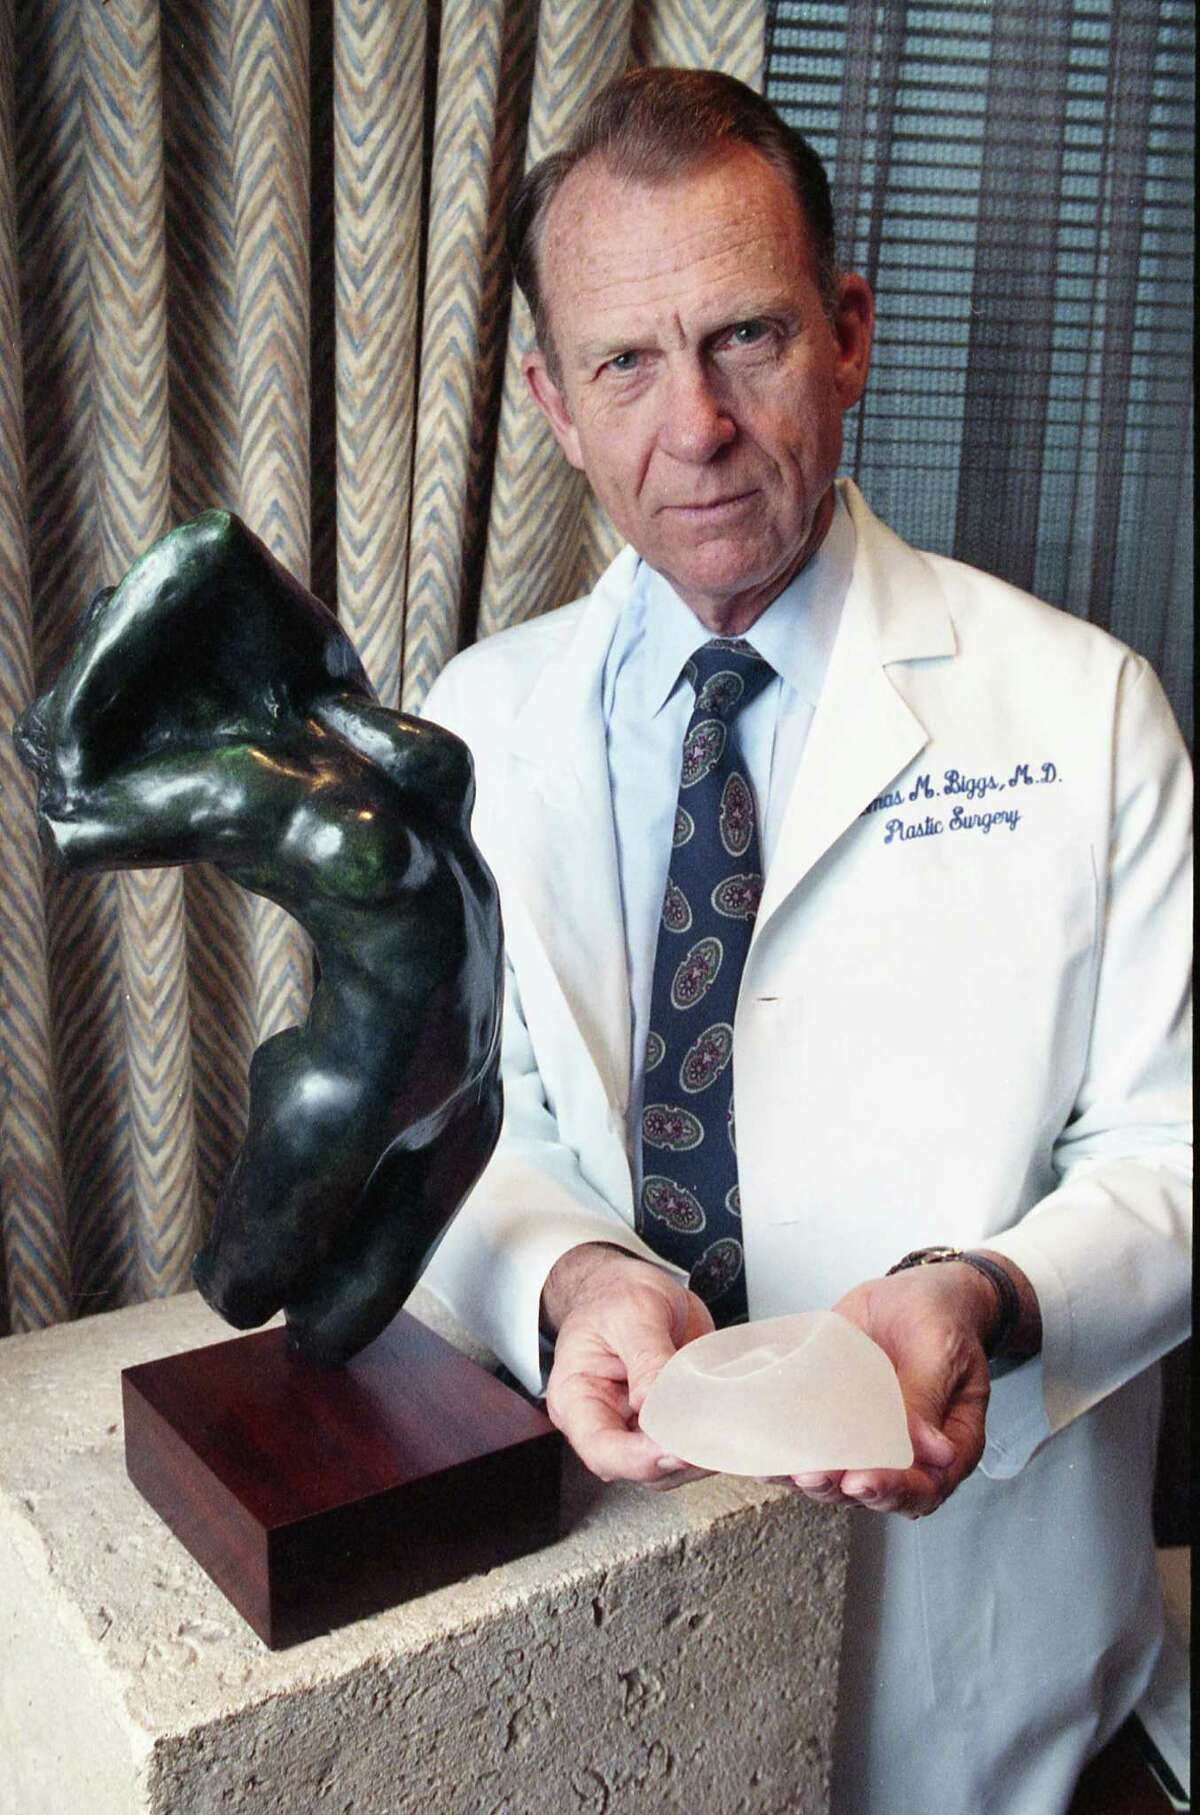 Dr. Thomas Biggs, a Houston plastic surgeon, photographed on Feb. 3, 1992, displays a silicone-gel breast implant. In the early 1990s, the FDA set a moratorium on silicone gel implants, and saline filled implants rose in popularity. As a resident with Baylor College of Medicine, Biggs helped on the team that performed the first breast augmentation surgery using the implants. Biggs also took care of the test case patient, a dog named Esmeralda who got a biscuit-sized implant before they tried the device on human patients.